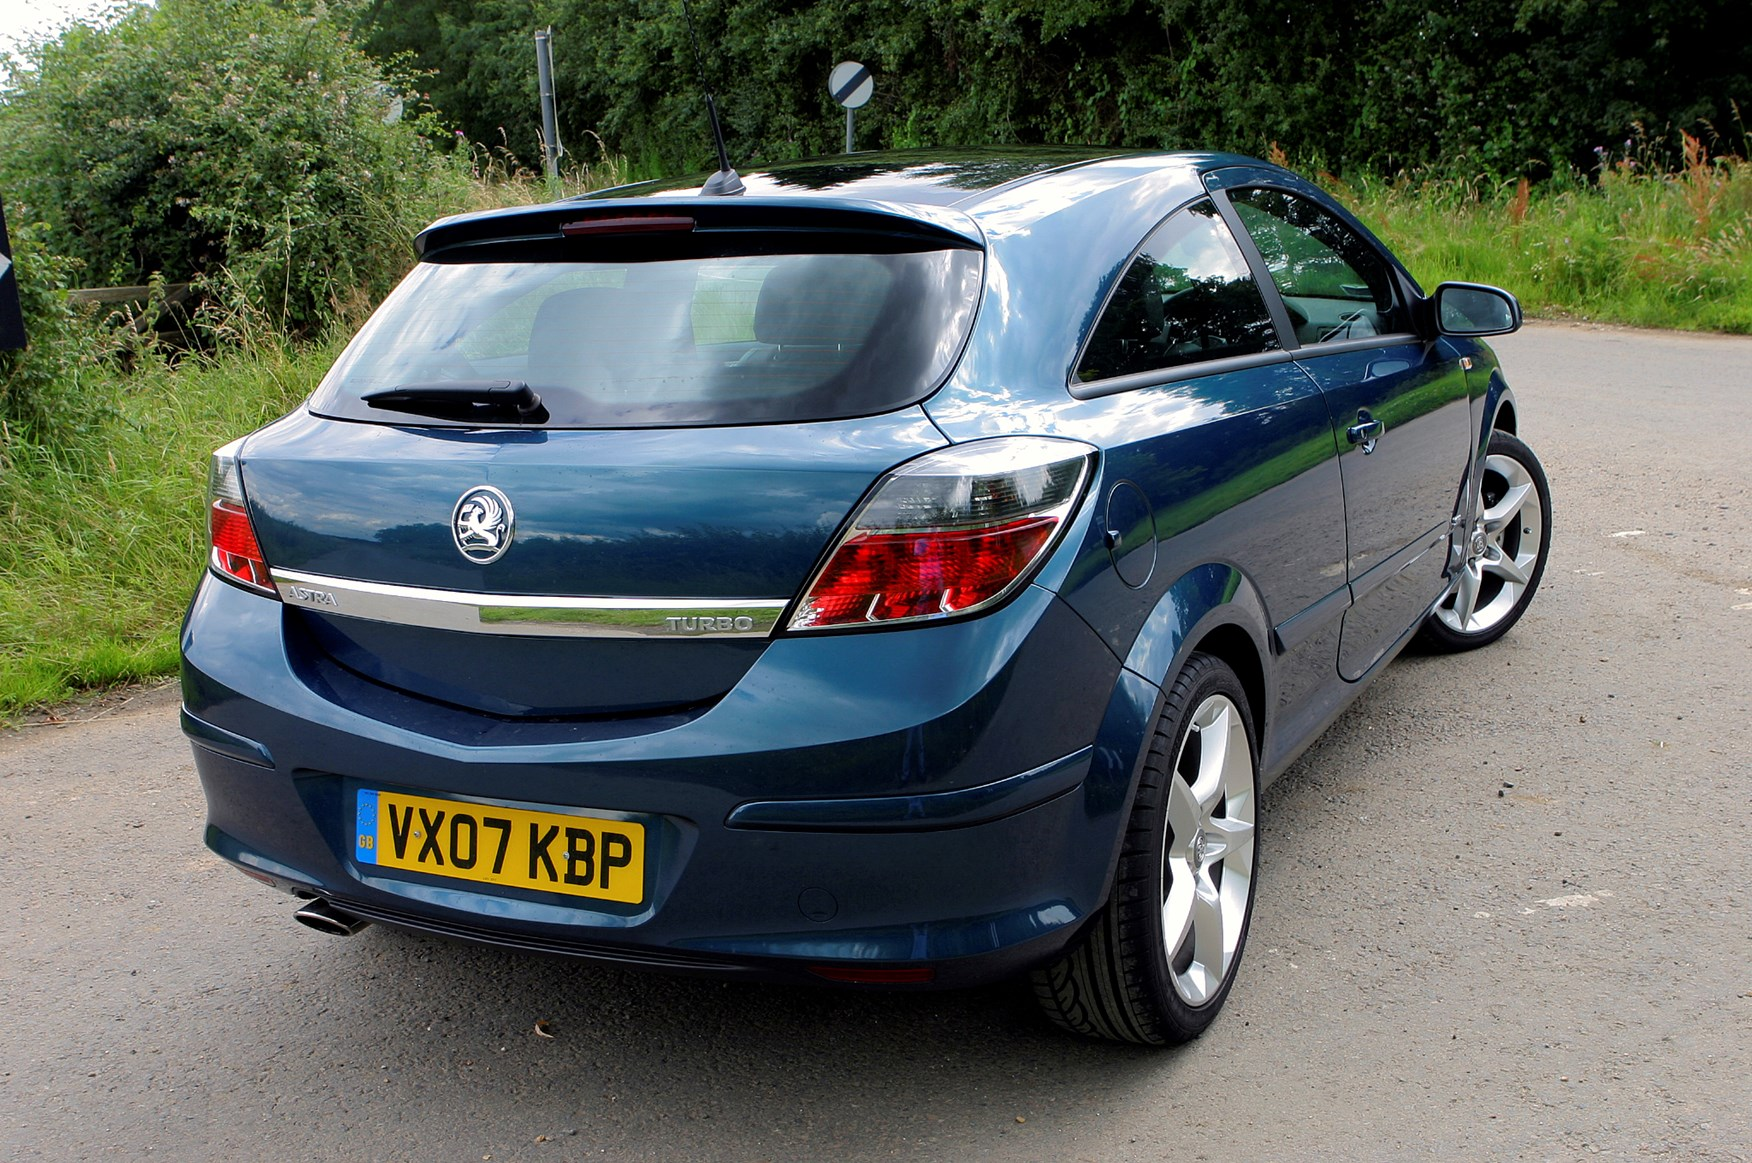 100 opel astra 2005 2005 opel astra h gtc hatchback 3d wallpapers specs and news opel. Black Bedroom Furniture Sets. Home Design Ideas